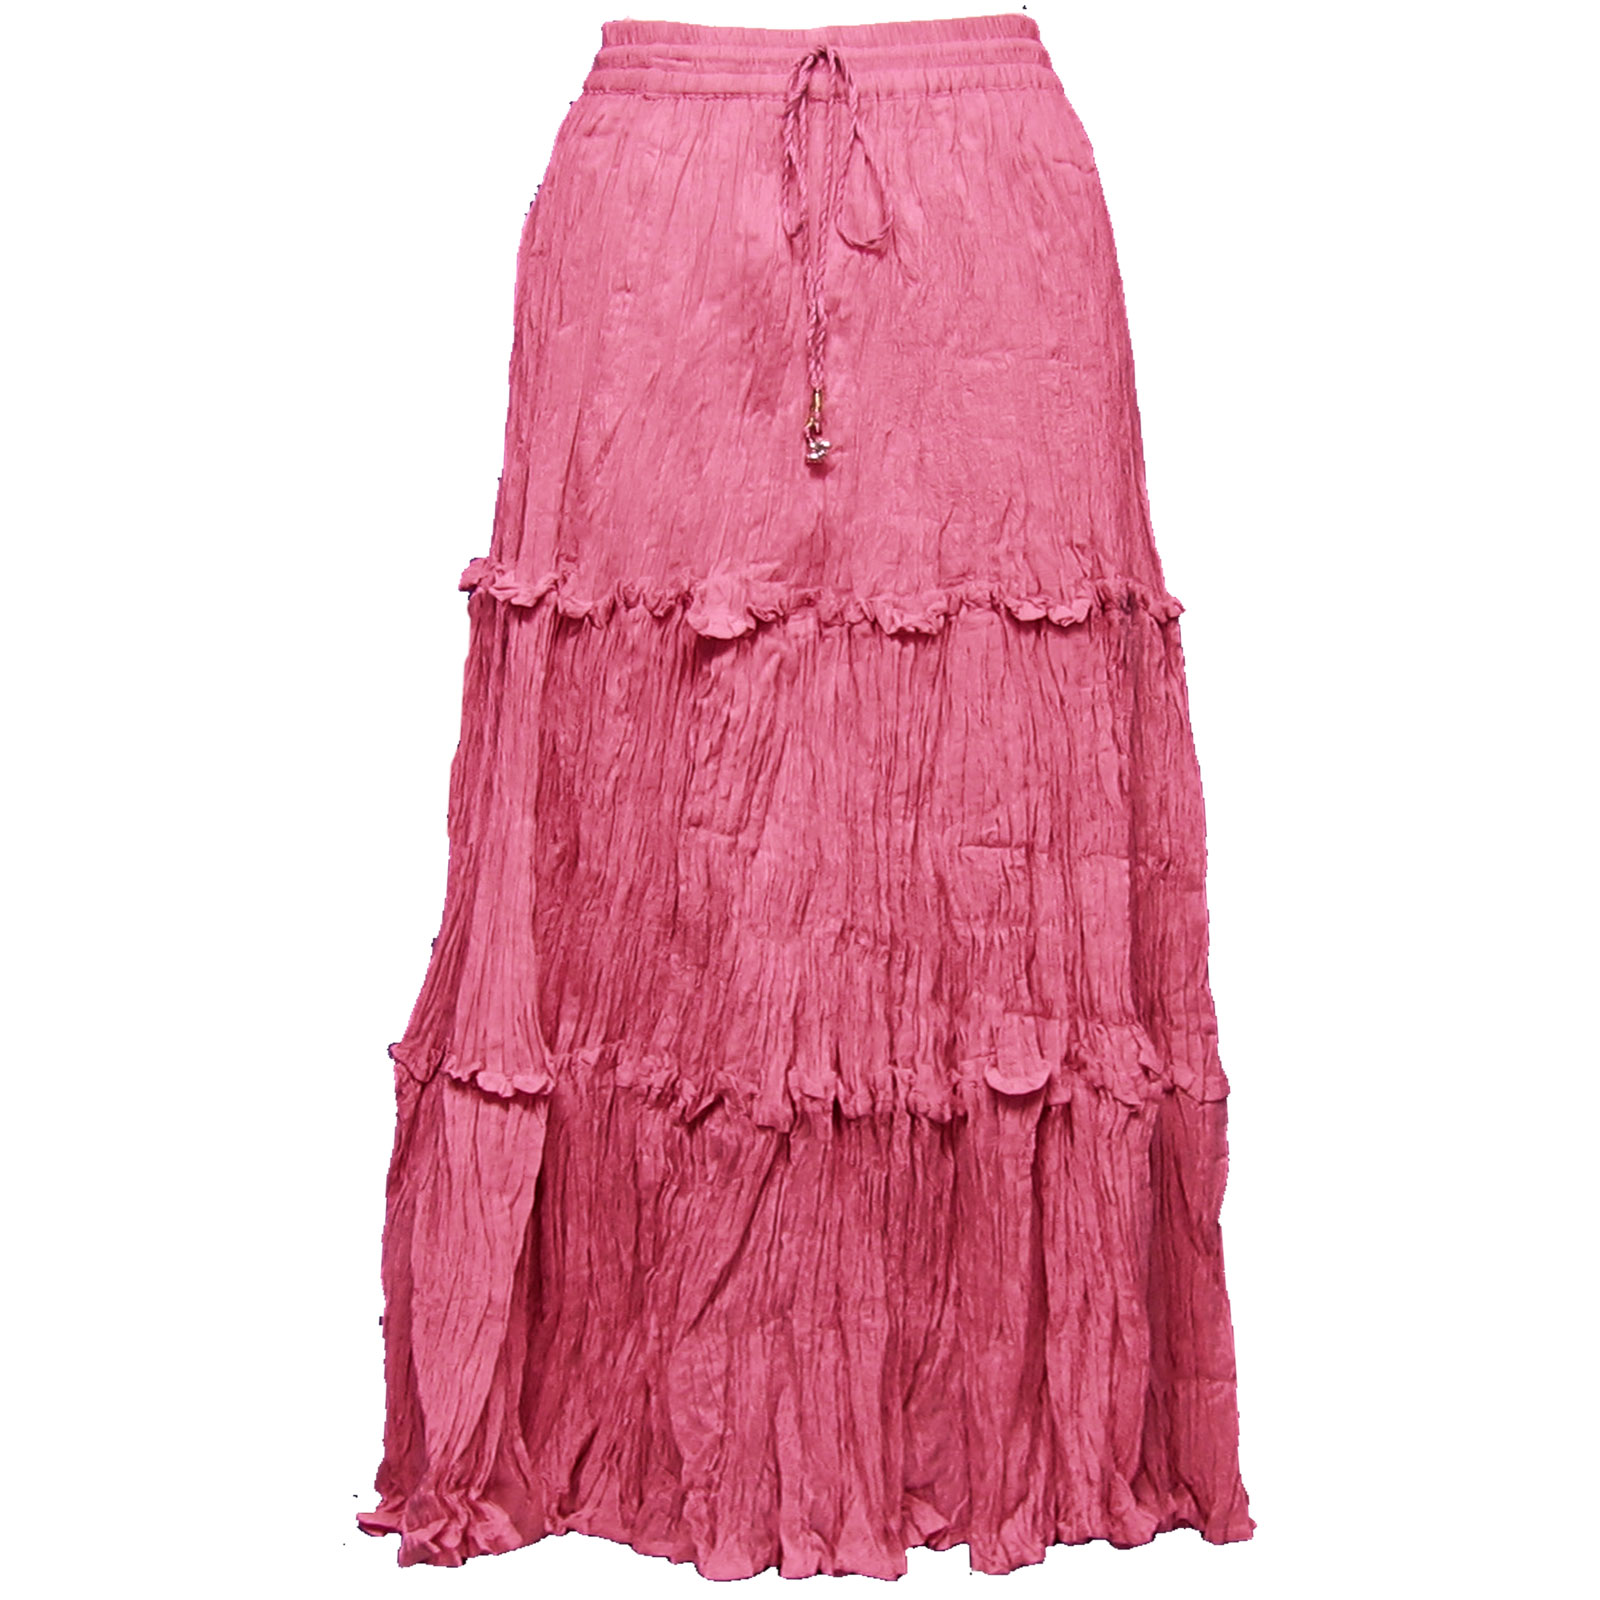 Wholesale Skirts - Cotton Three Tier Broomstick 500 & 529 Ankle Length - Pink - One Size (S-XL)